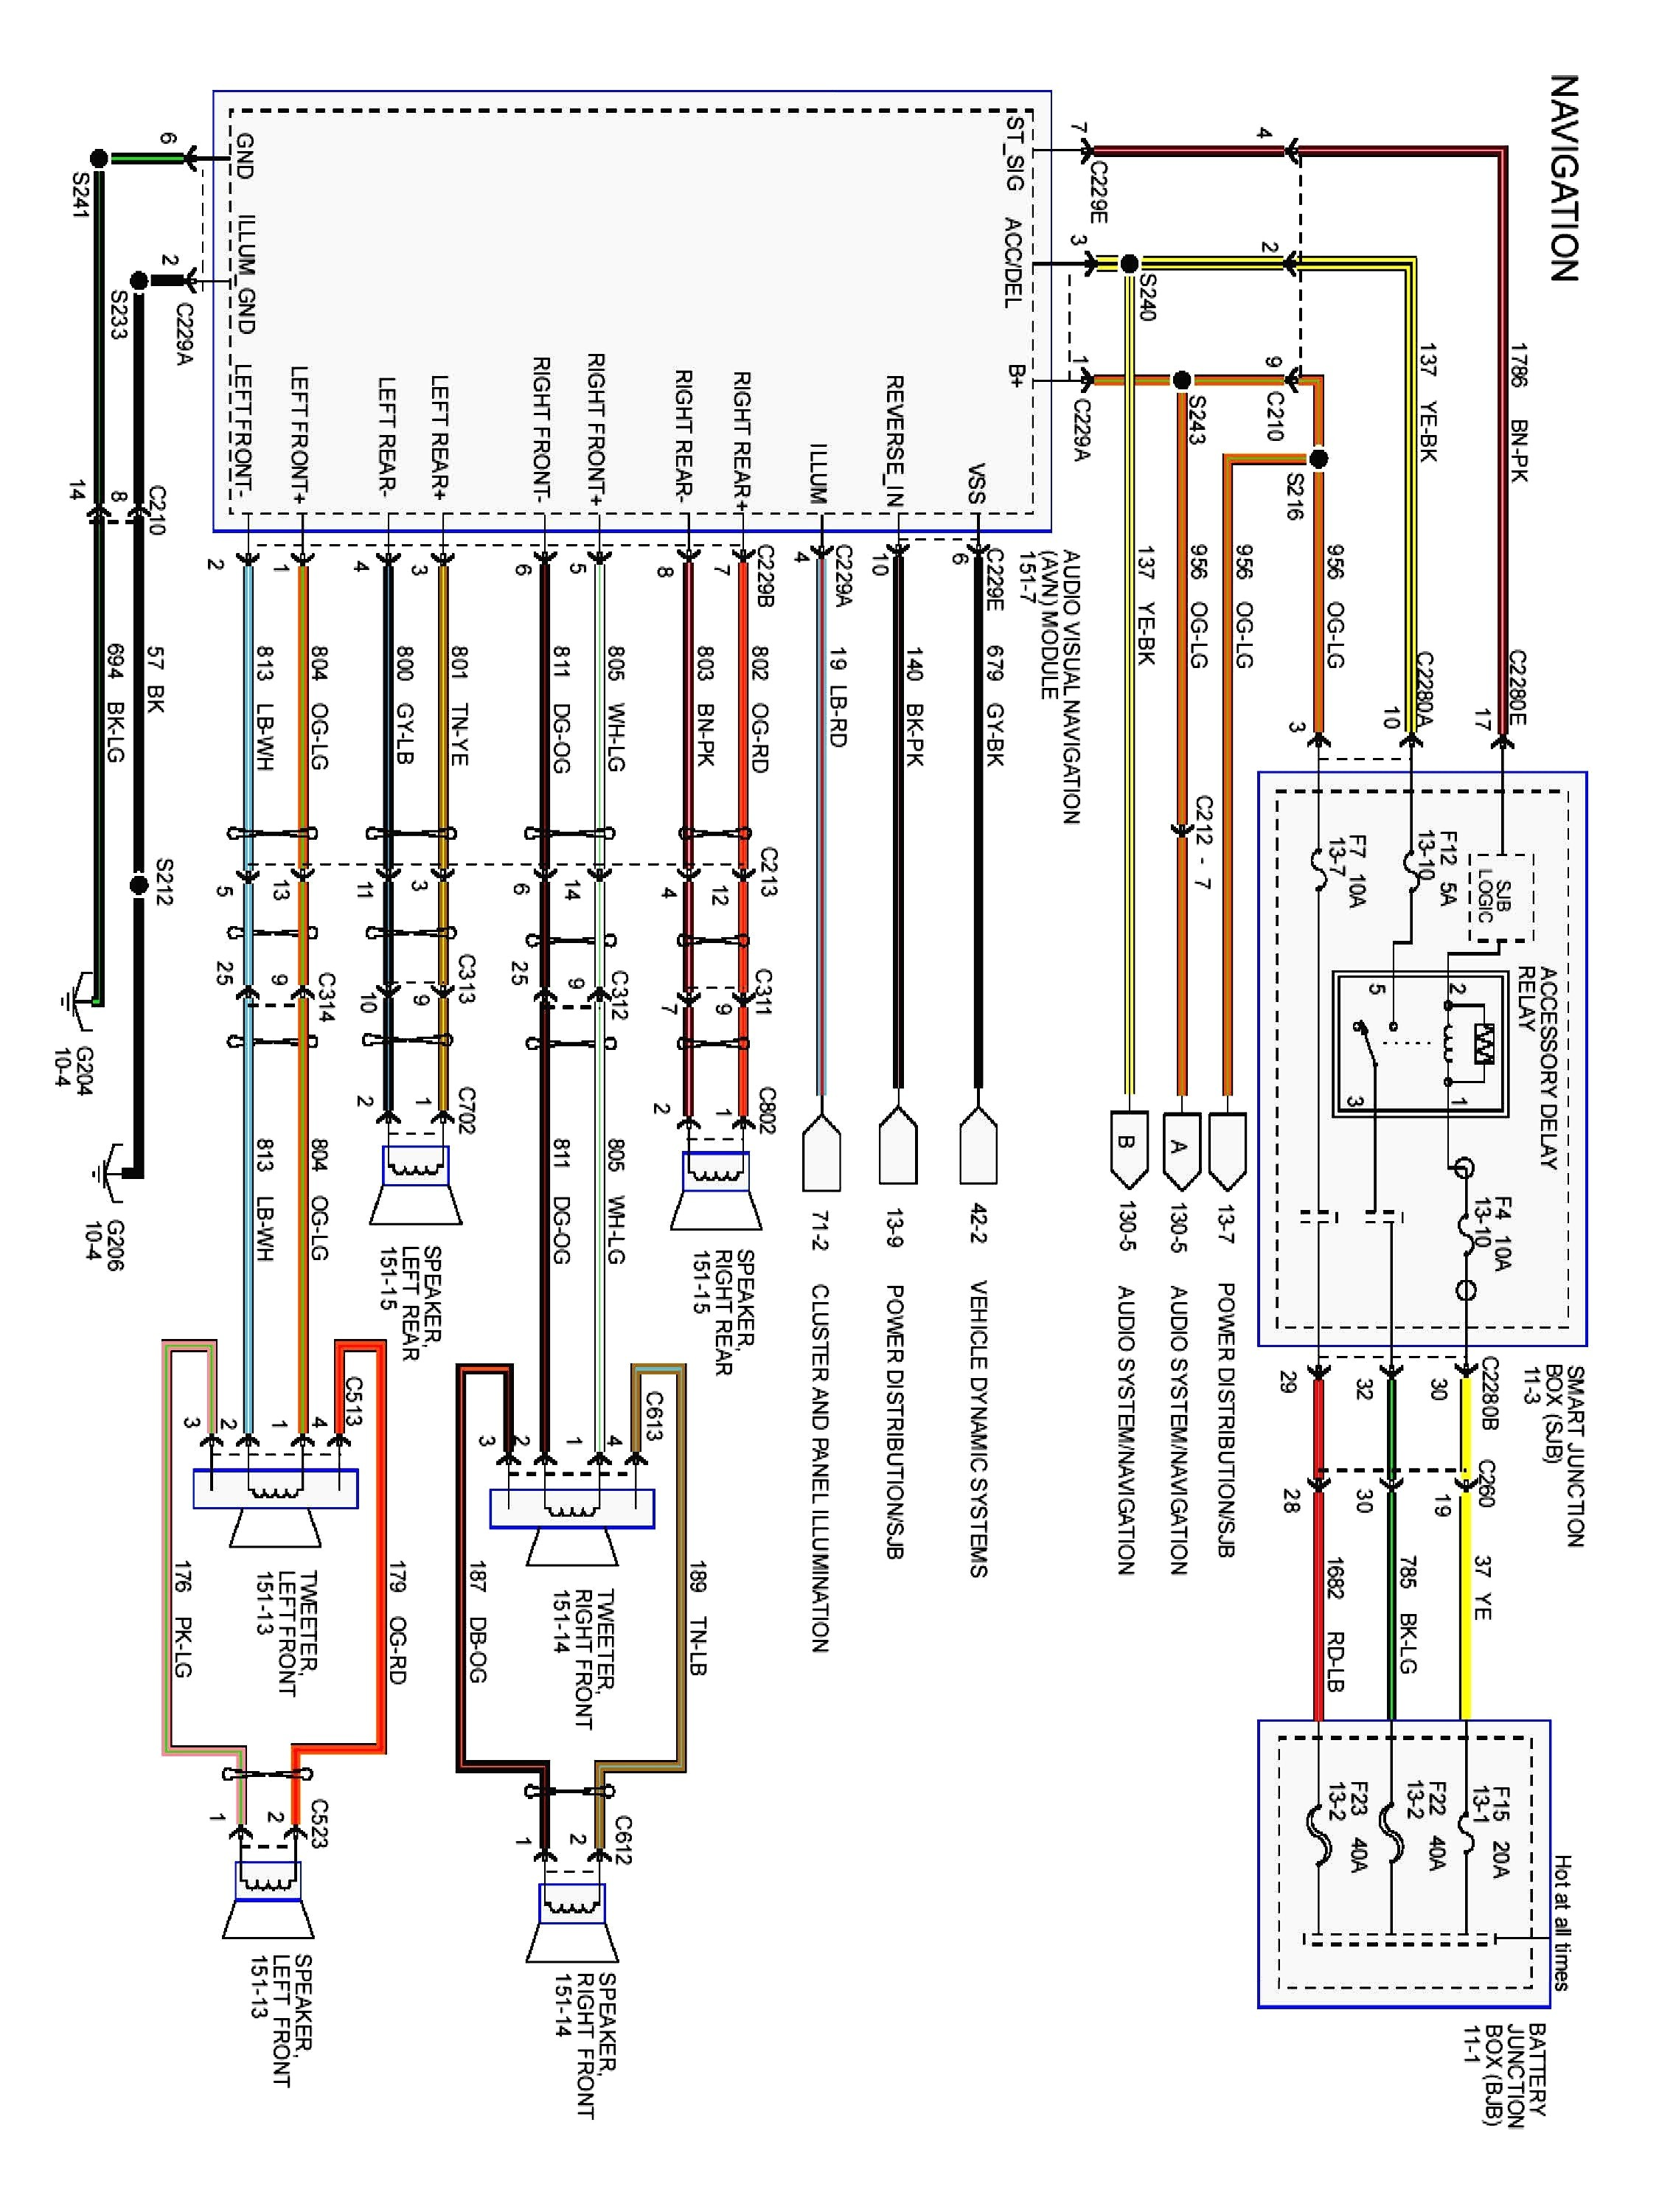 2006 f350 stereo wiring diagram - wiring diagram heat-provider -  heat-provider.networkantidiscriminazione.it  networkantidiscriminazione.it